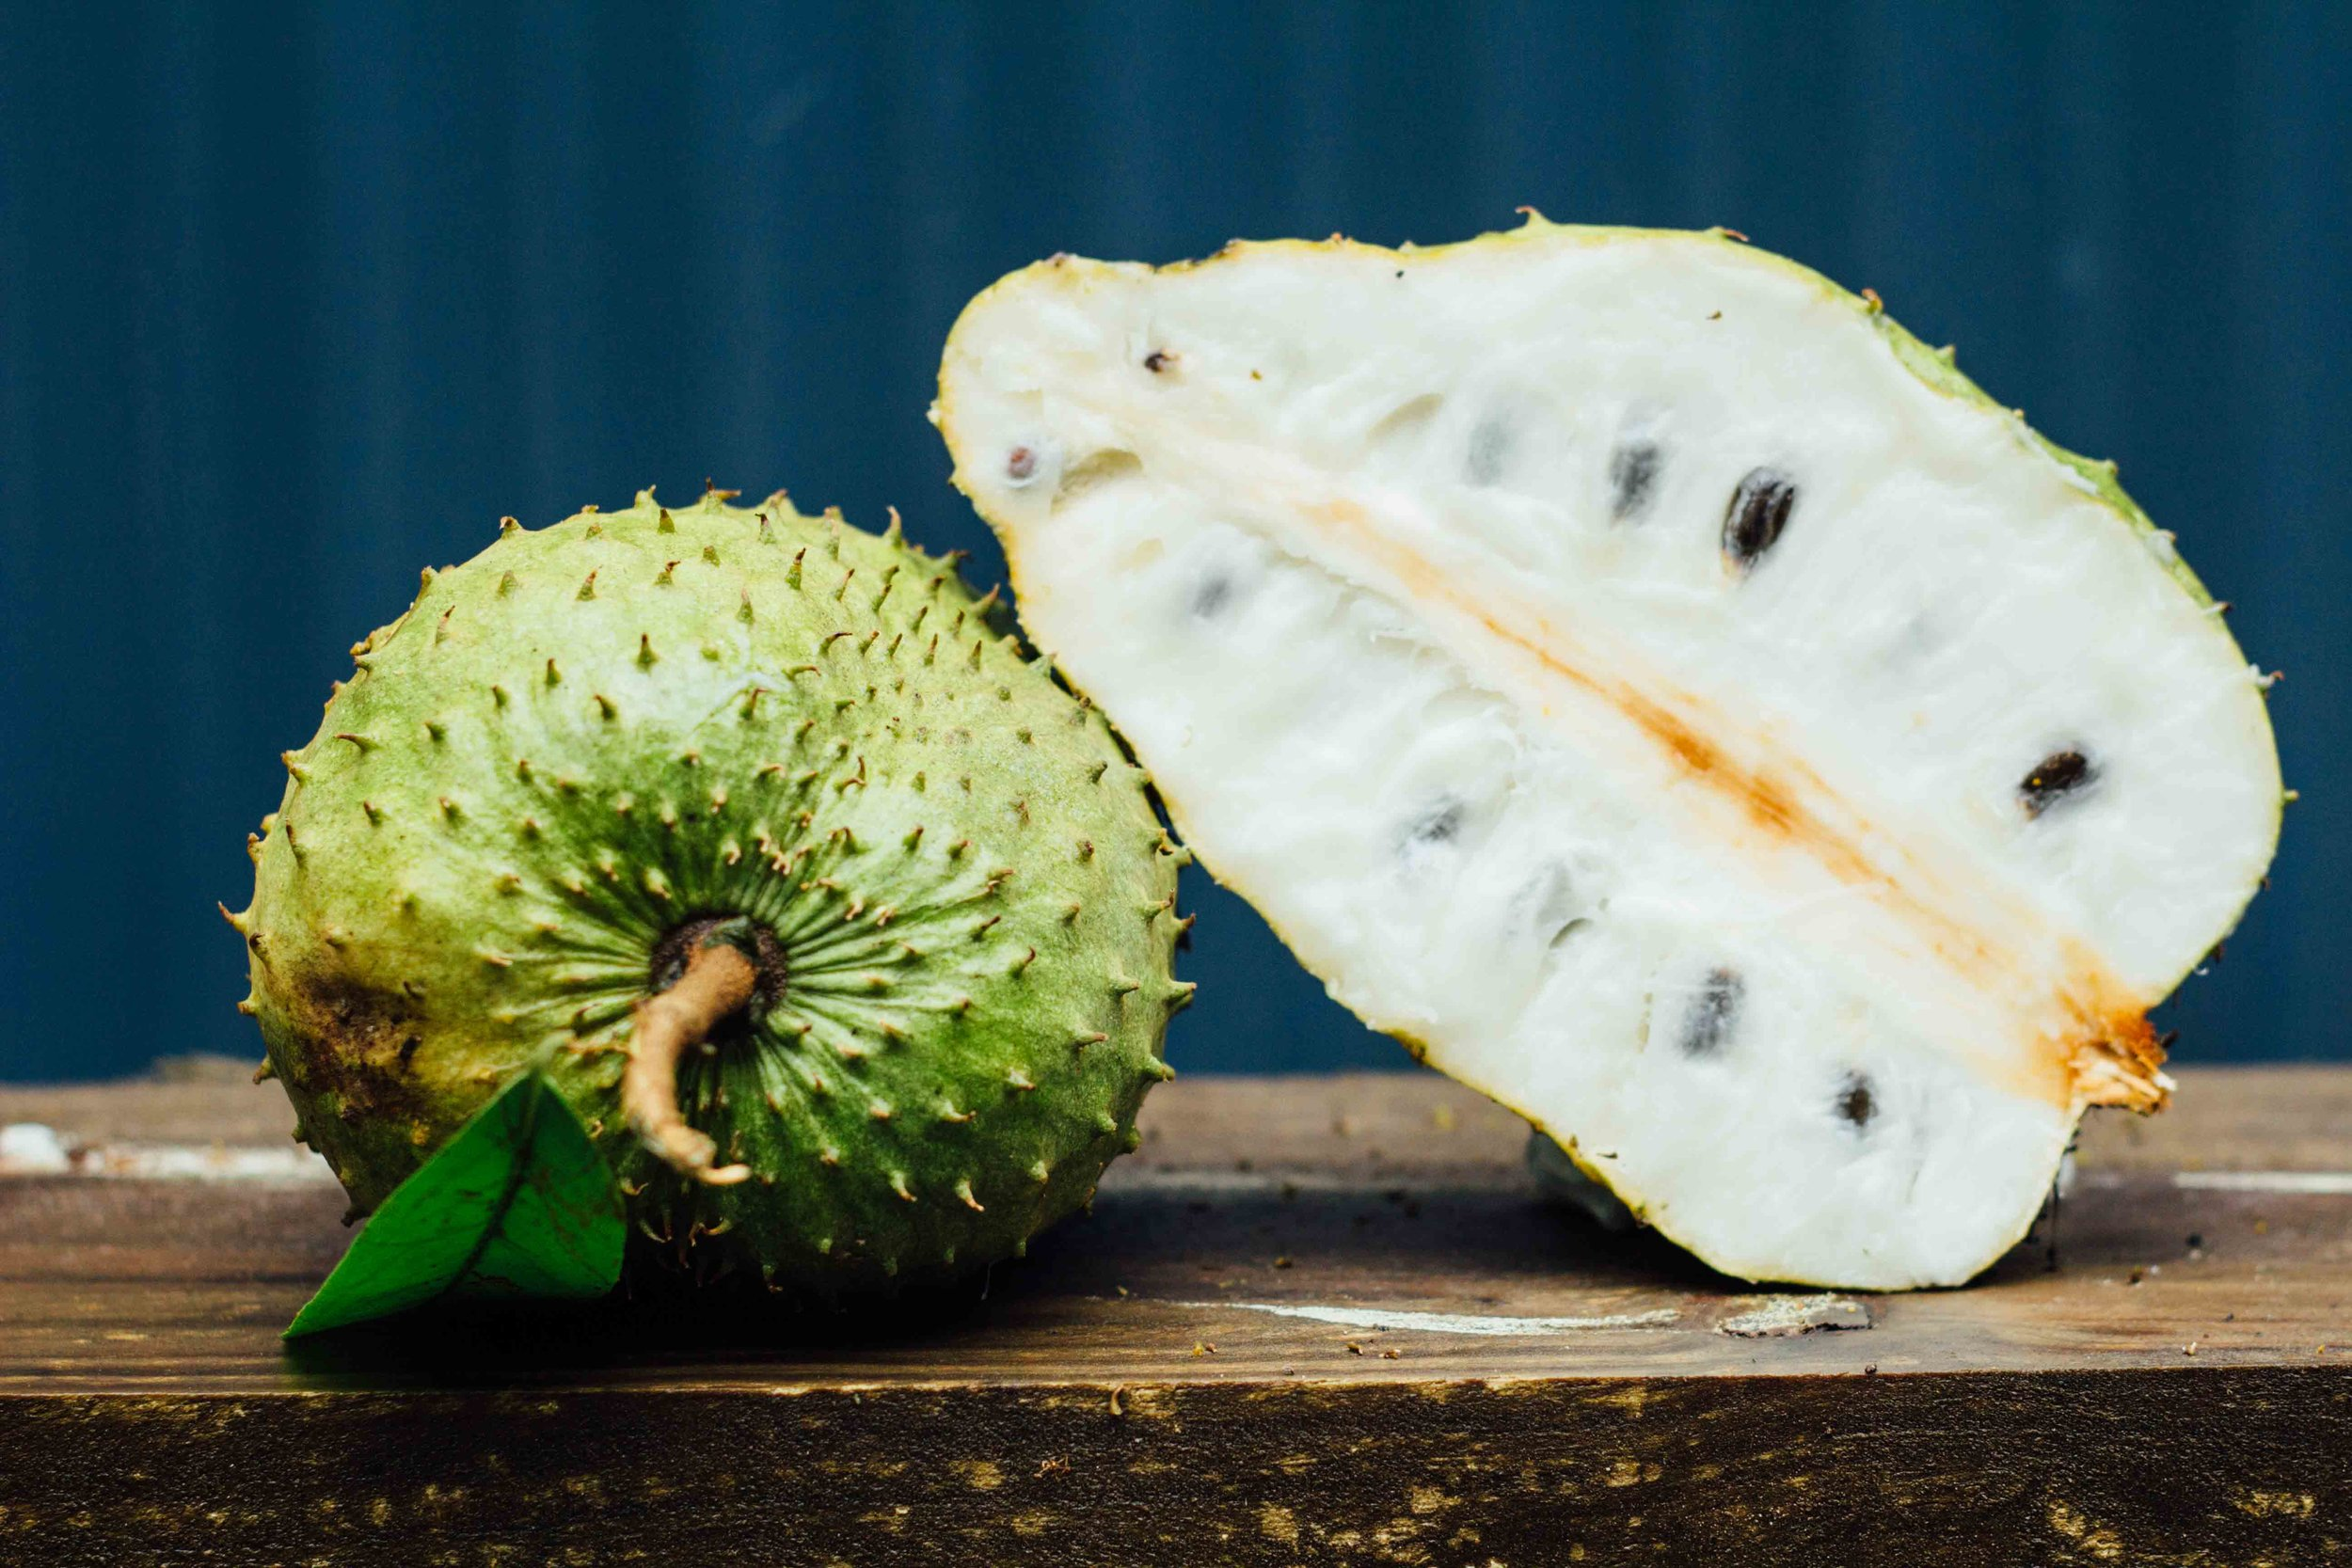 wildwood exotic fruit soursop